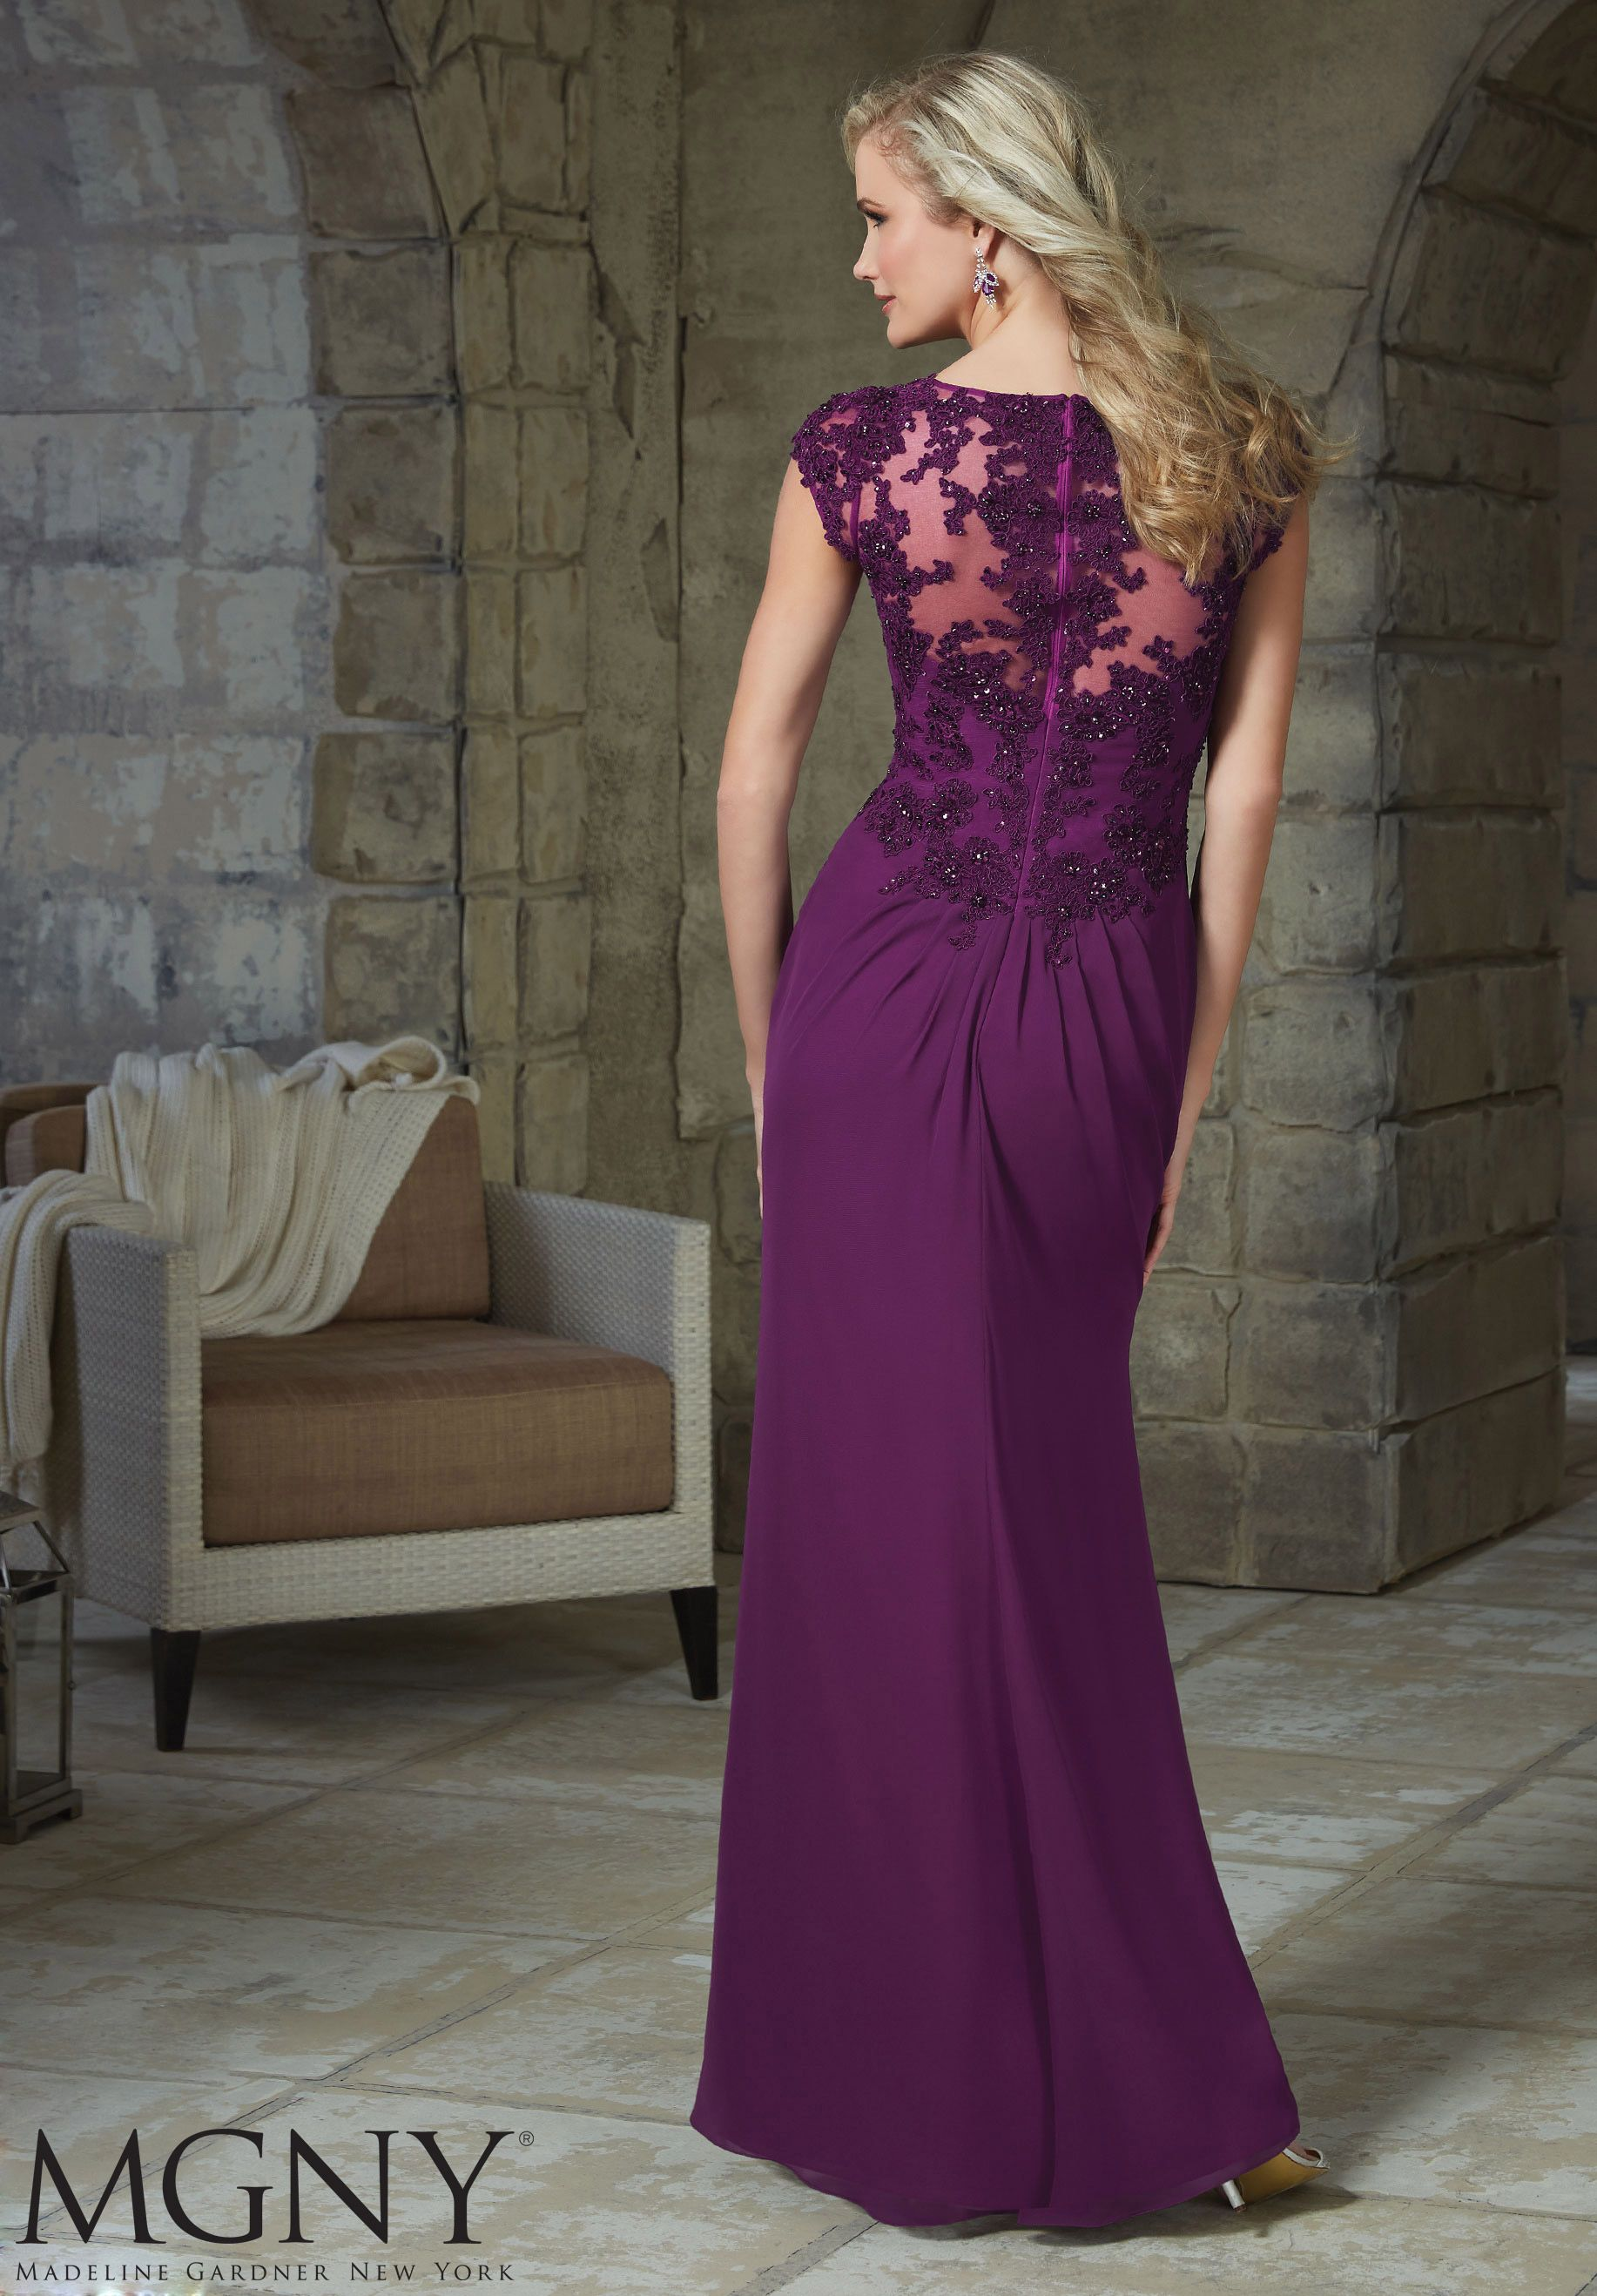 Beaded Lace Appliques on Chiffon Evening Gown/Mother of the Bride ...